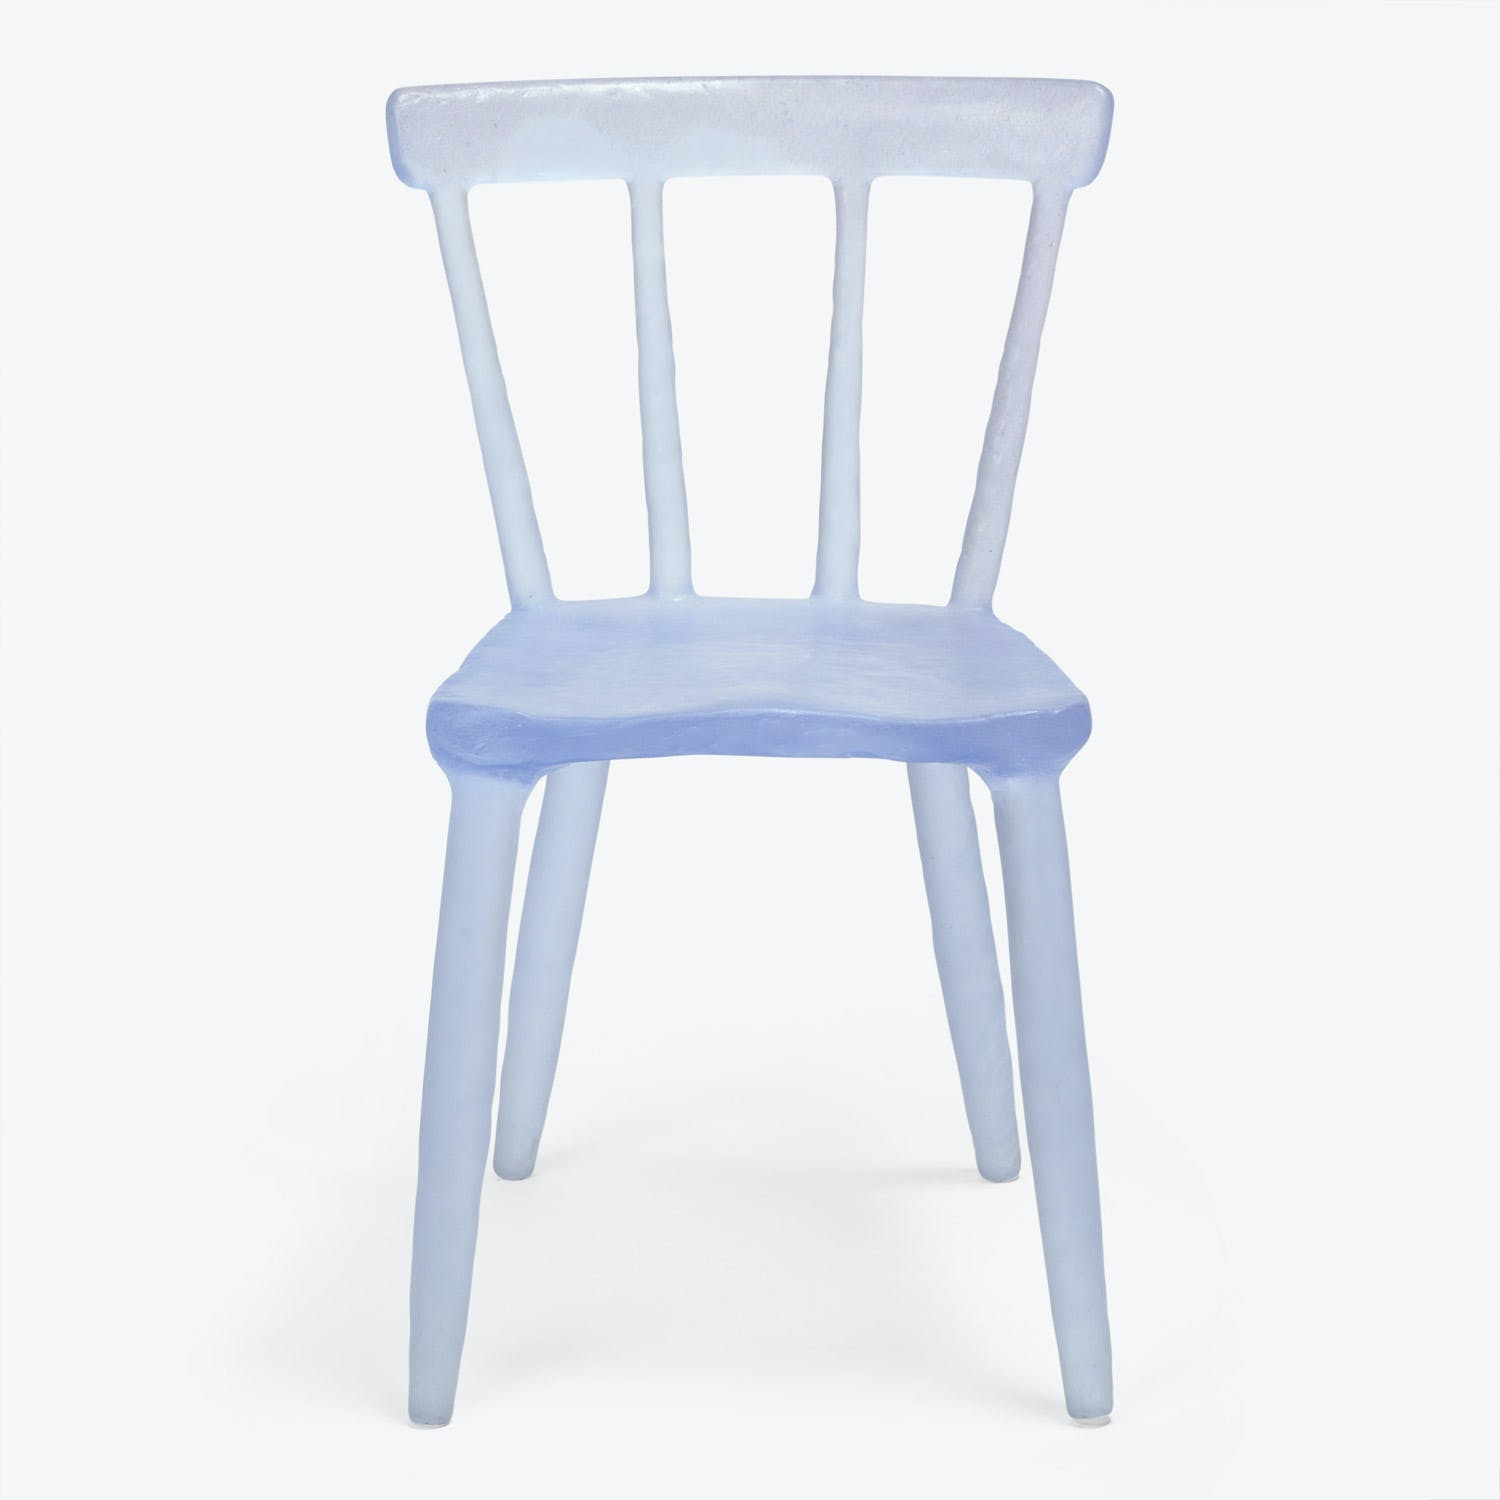 Product Image - Glow Chair Periwinkle